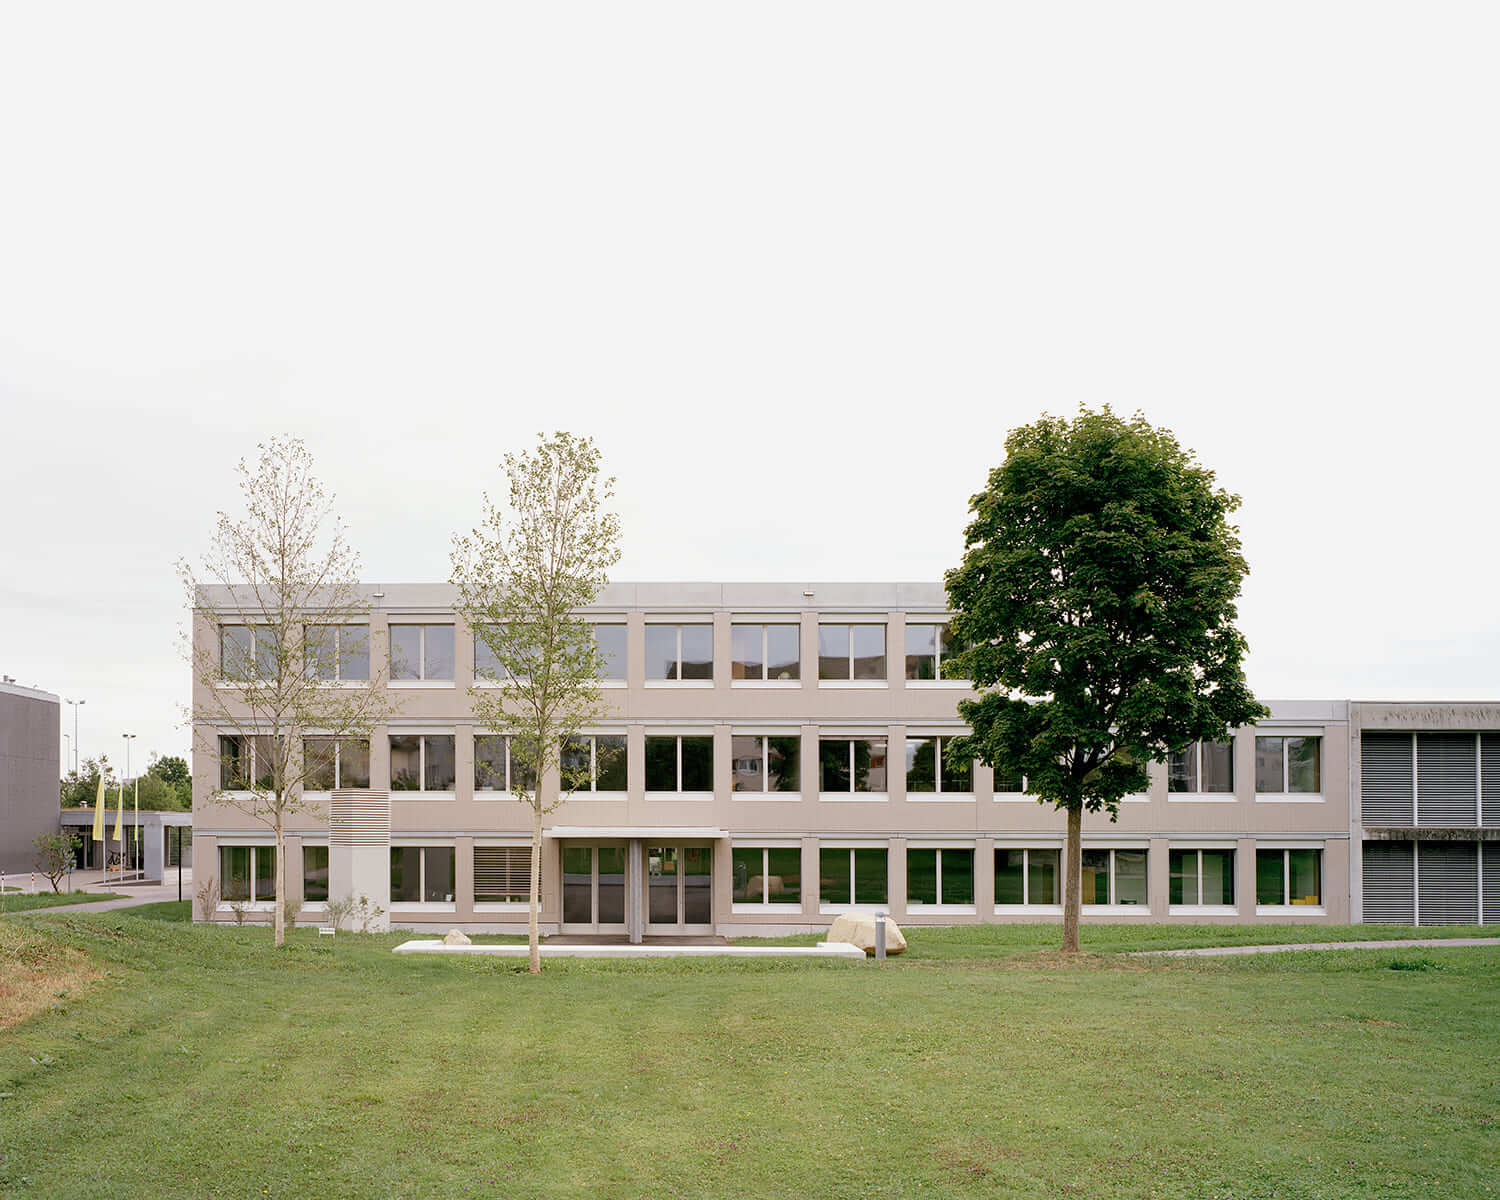 Secondary School Romanshorn  - 26 2.2 37